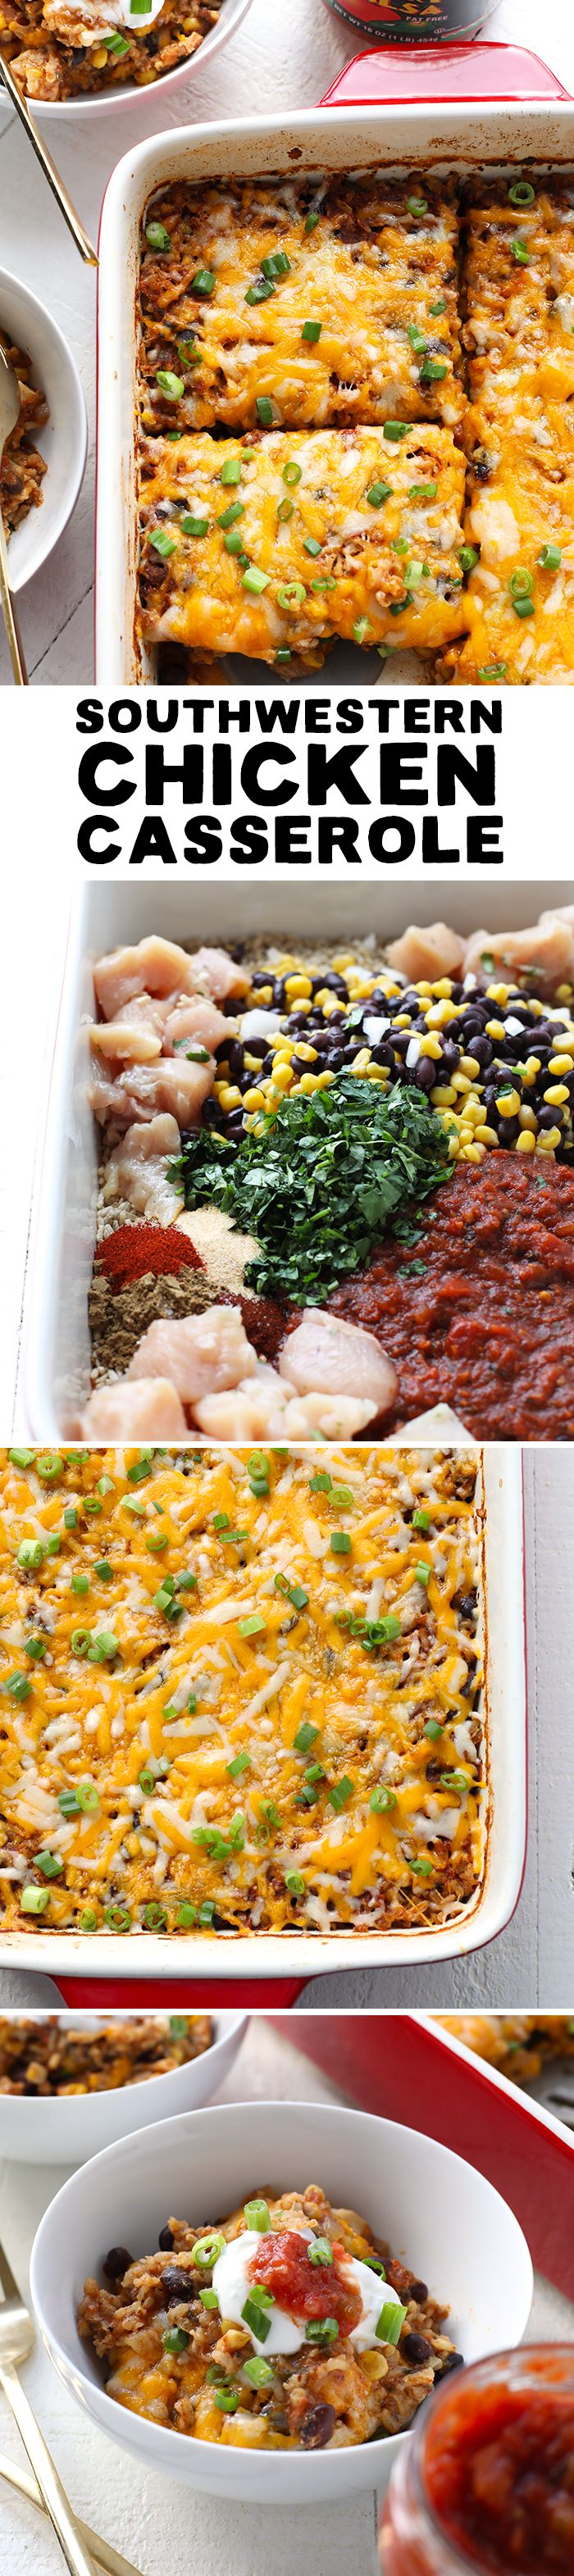 This Southwestern Chicken Casserole calls for extremely simple ingredients and doesn't take much work to make. Best part…it's full of flavor!